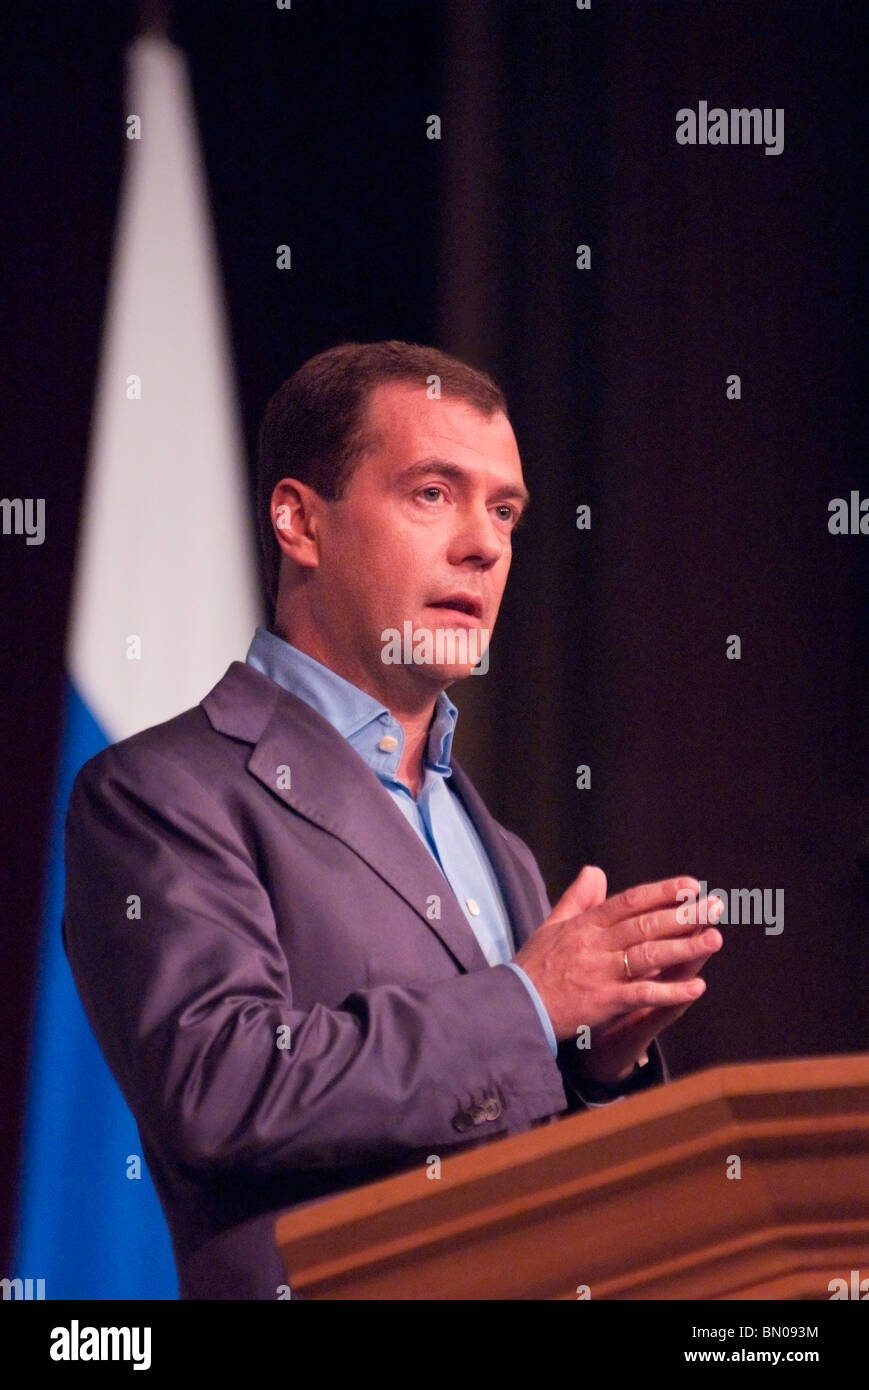 Russian President Dmitry Medvedev speaking to 400 faculty and guests at Stanford University in Silicon Valley, CA - Stock Image